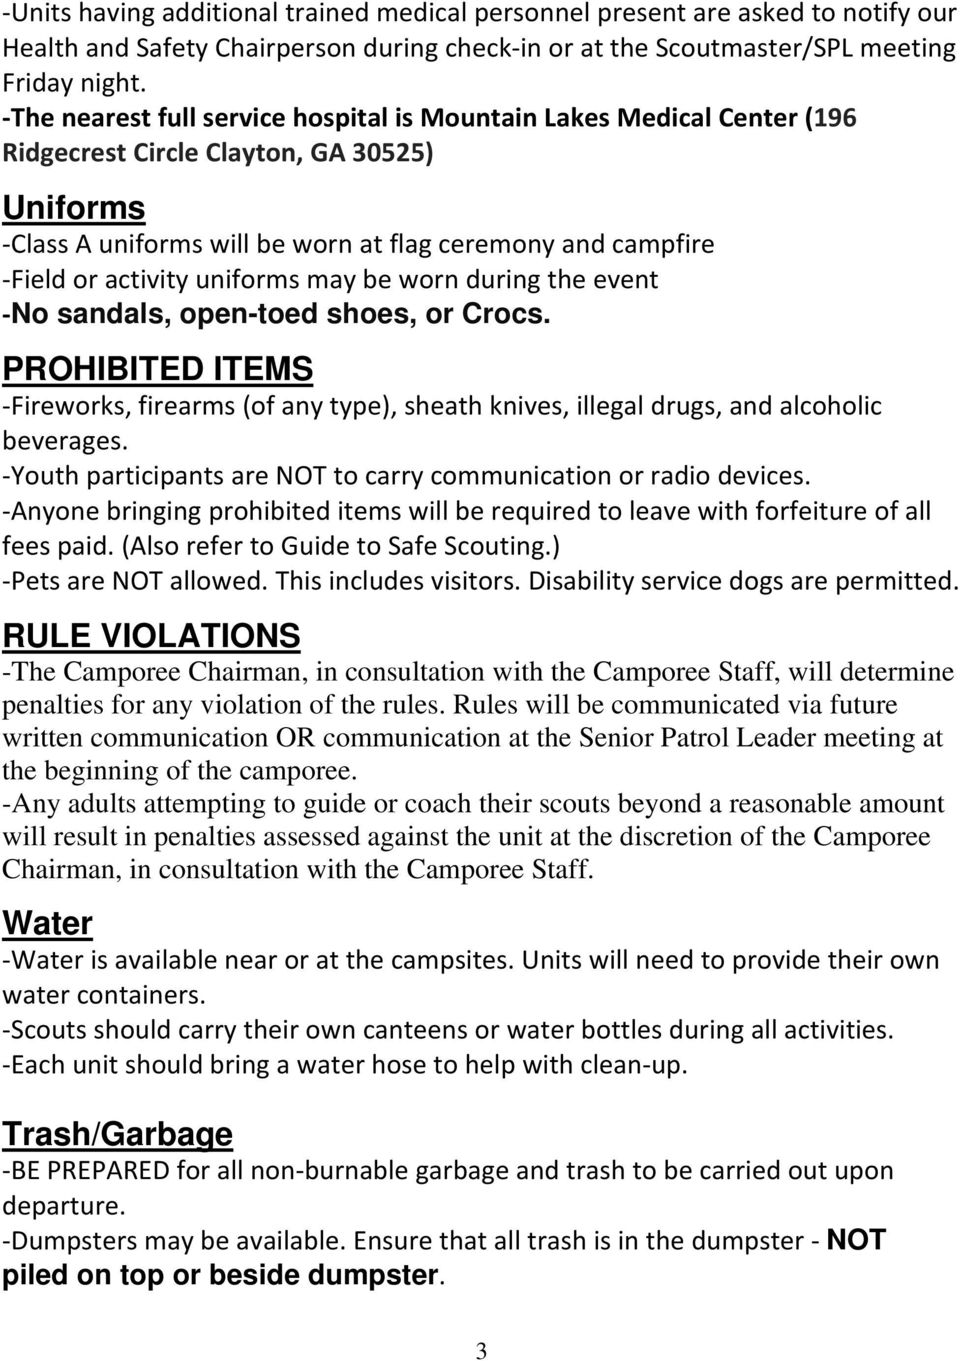 uniforms may be worn during the event No sandals, open-toed shoes, or Crocs. PROHIBITED ITEMS Fireworks, firearms (of any type), sheath knives, illegal drugs, and alcoholic beverages.